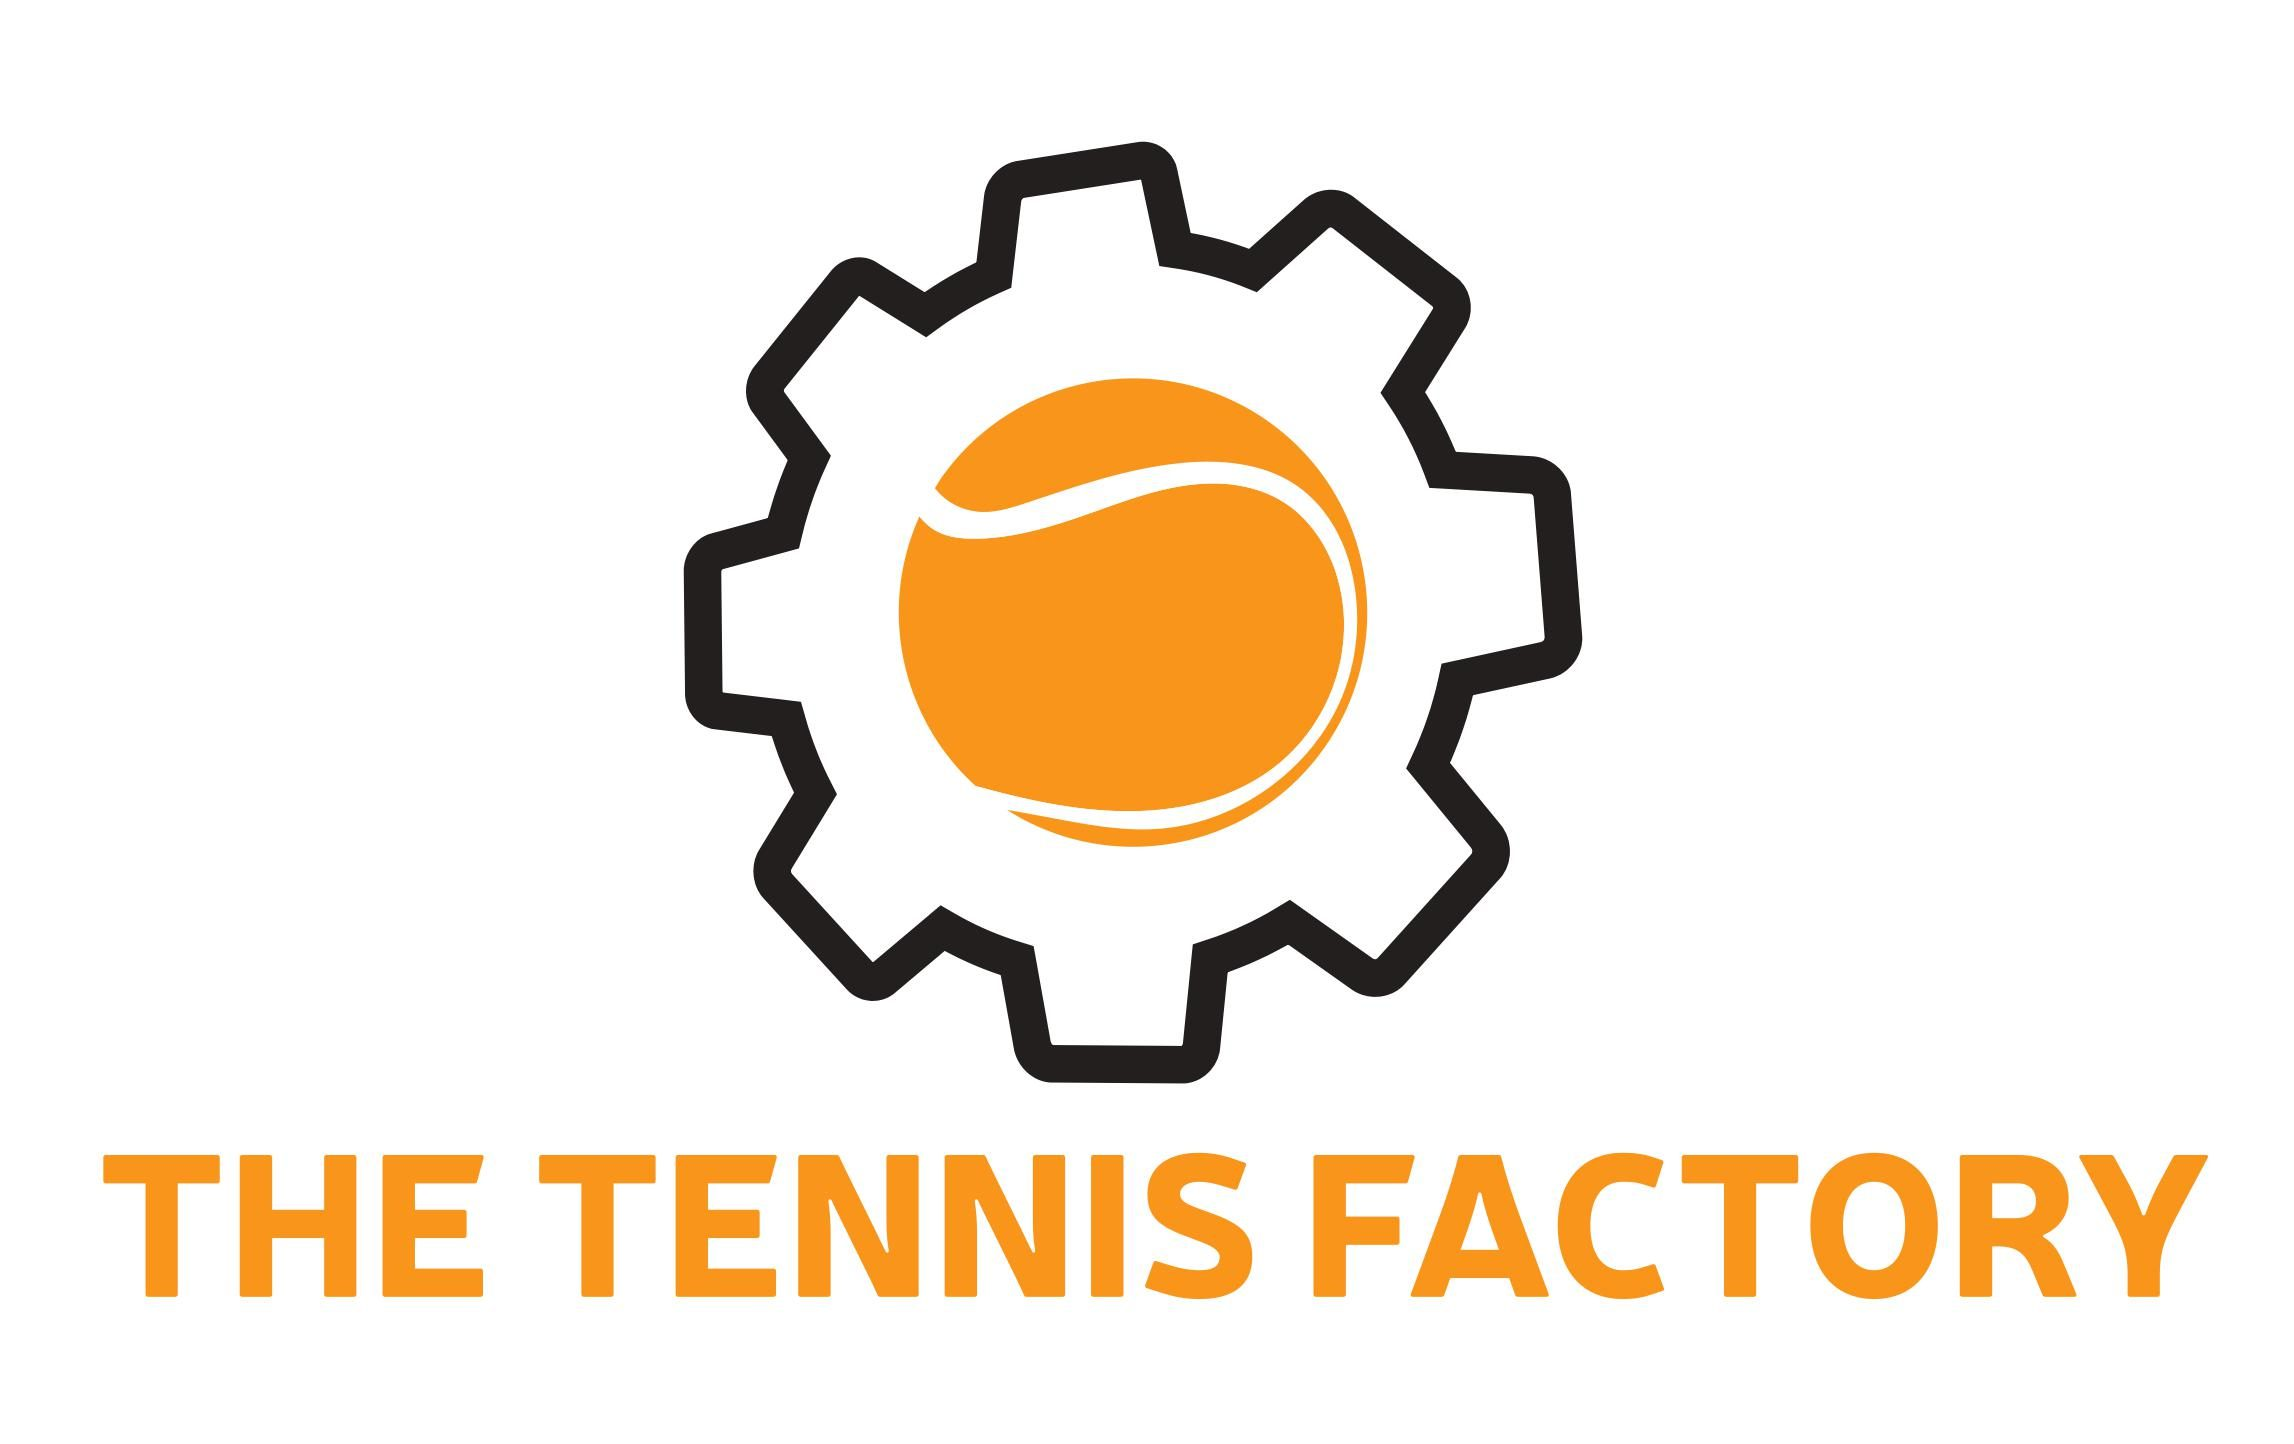 The Tennis Factory